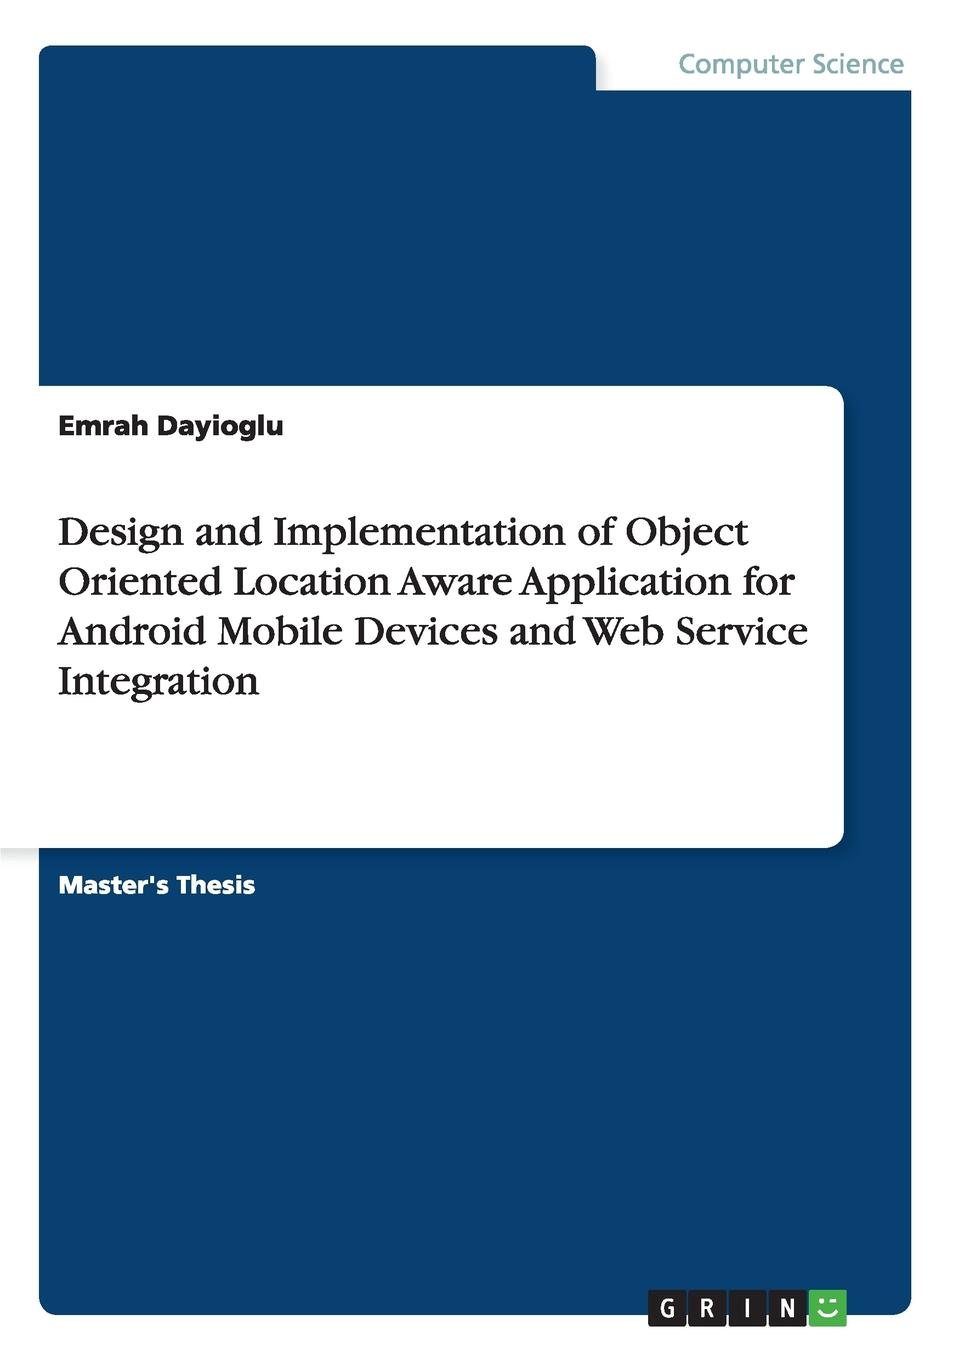 Emrah Dayioglu Design and Implementation of Object Oriented Location Aware Application for Android Mobile Devices and Web Service Integration